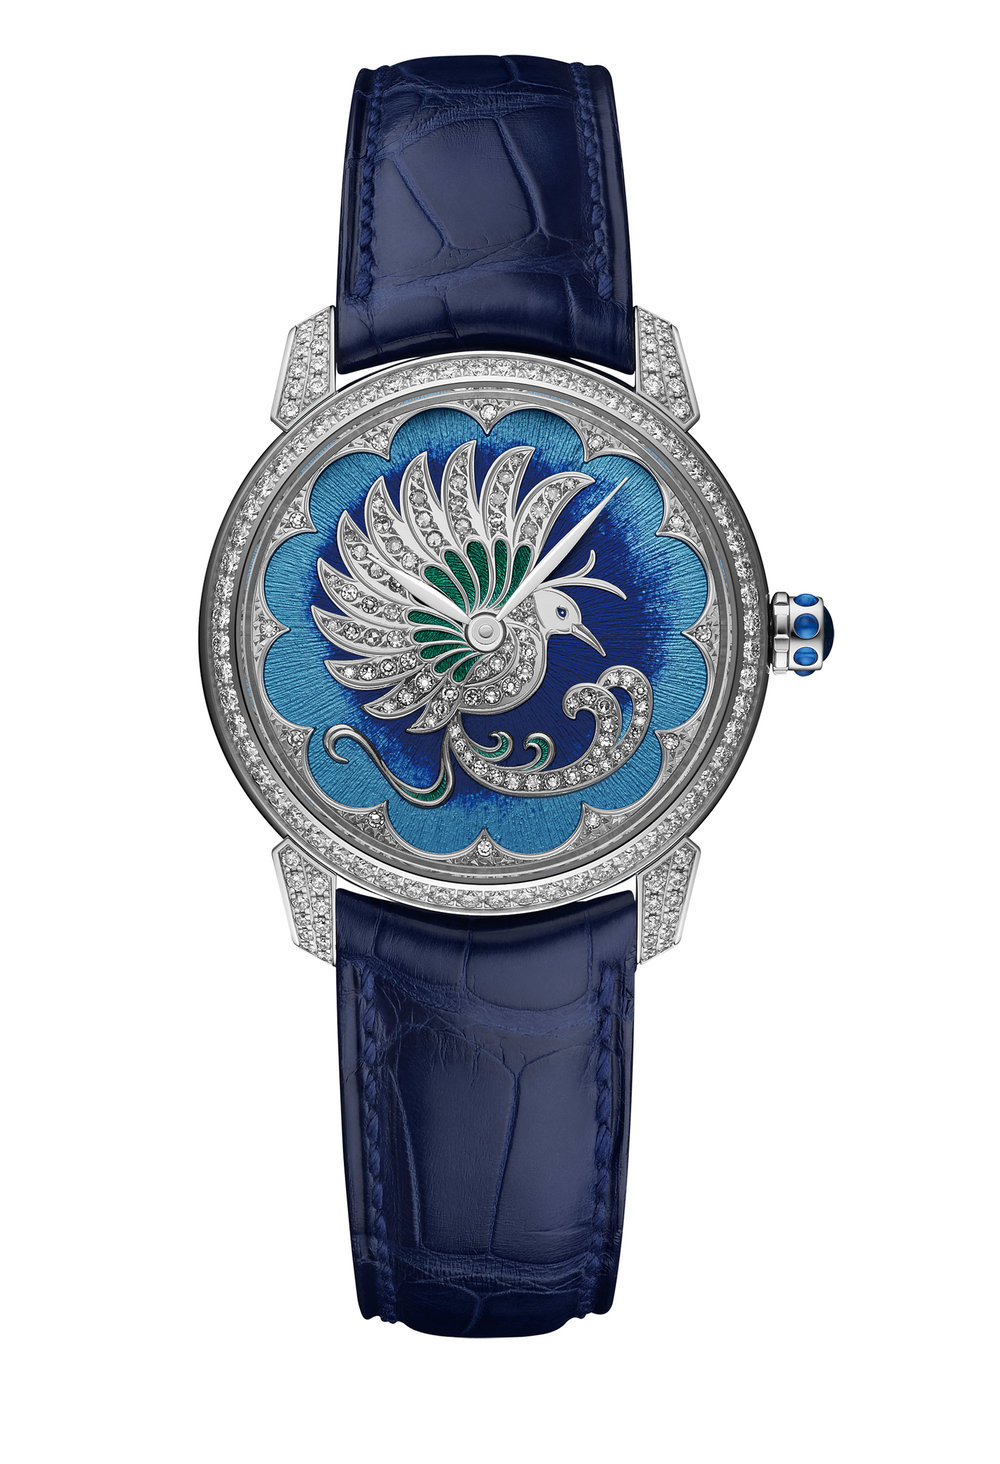 Ulysse Nardin  Classico Lady Watch Ref. 8150-112-2/PB, $47,000  Ulysse Nardin's classic collection continues its incredible decorative tradition with the stunningly unique Classico Lady Watch. A vividly blue enamel dial surrounds a diamond-studded bird of paradise within a flower-shaped frame. The 18k white gold, diamond-set case features a sapphire-accented crown and transparent back, on a blue alligator strap. Water resistant to 50 metres.  At Global Watch, (604) 684-6515,  ulysse-nardin.com